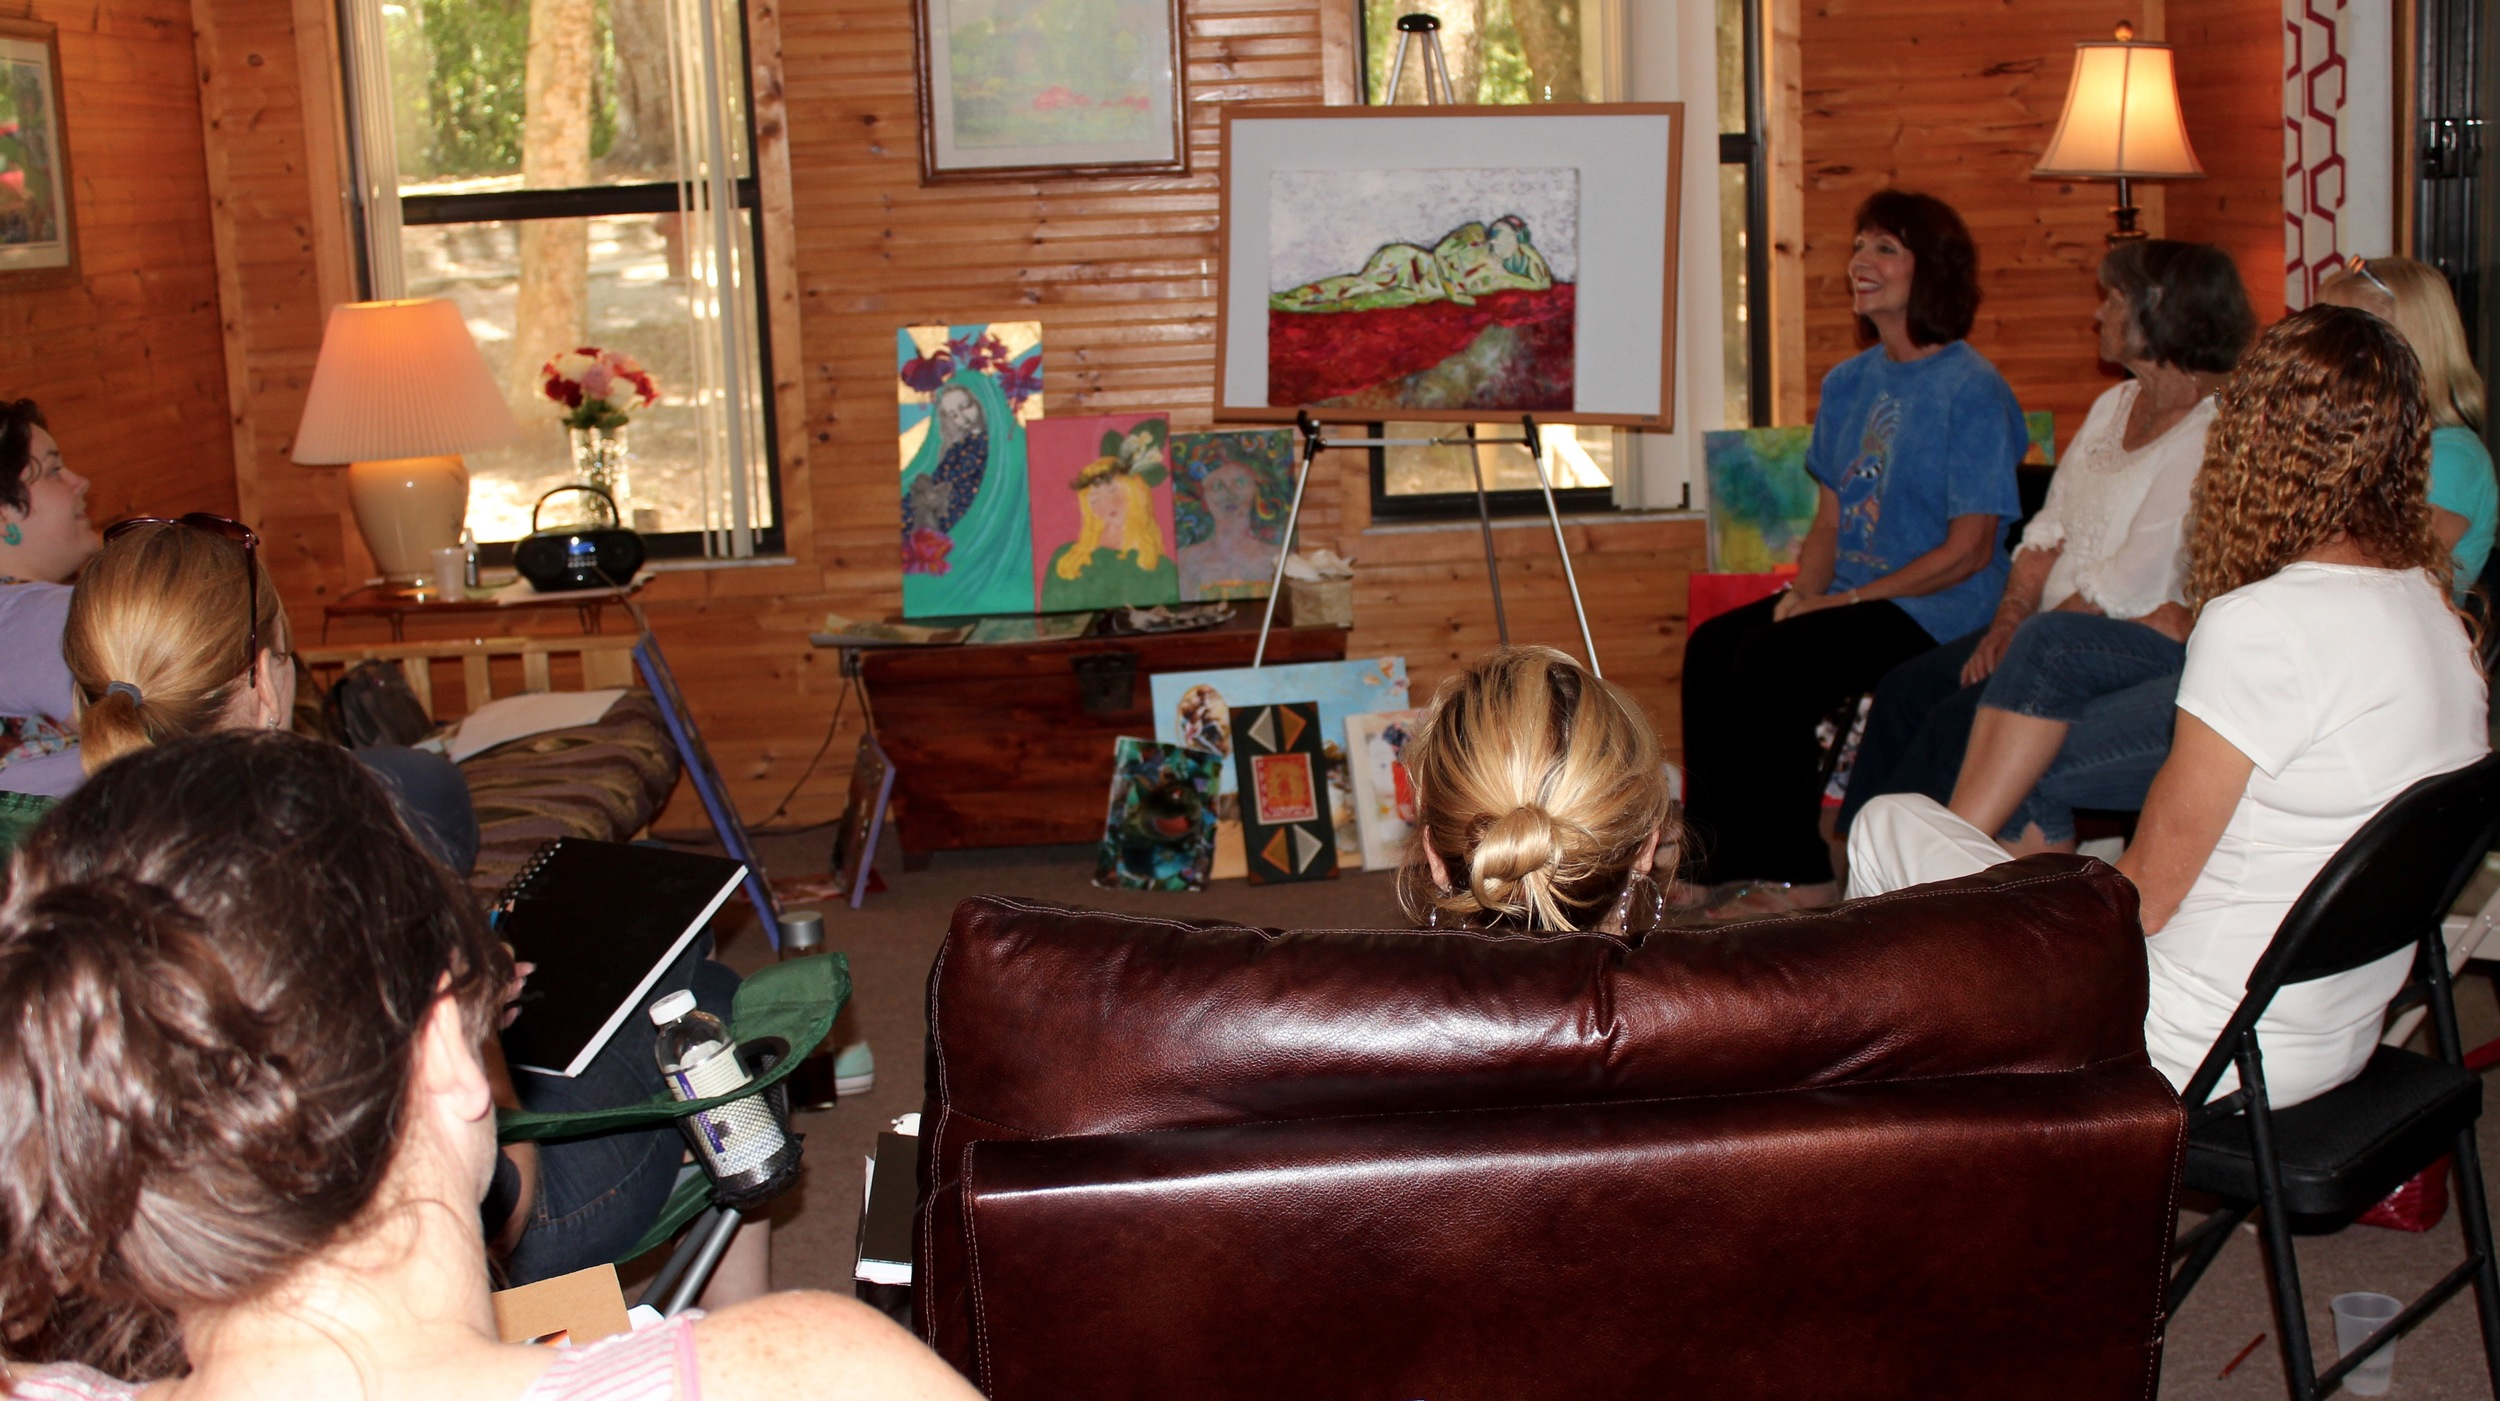 Participating in a critique at a recent retreat at Rainbow Rivers Center, led by Linn Sennott and me.